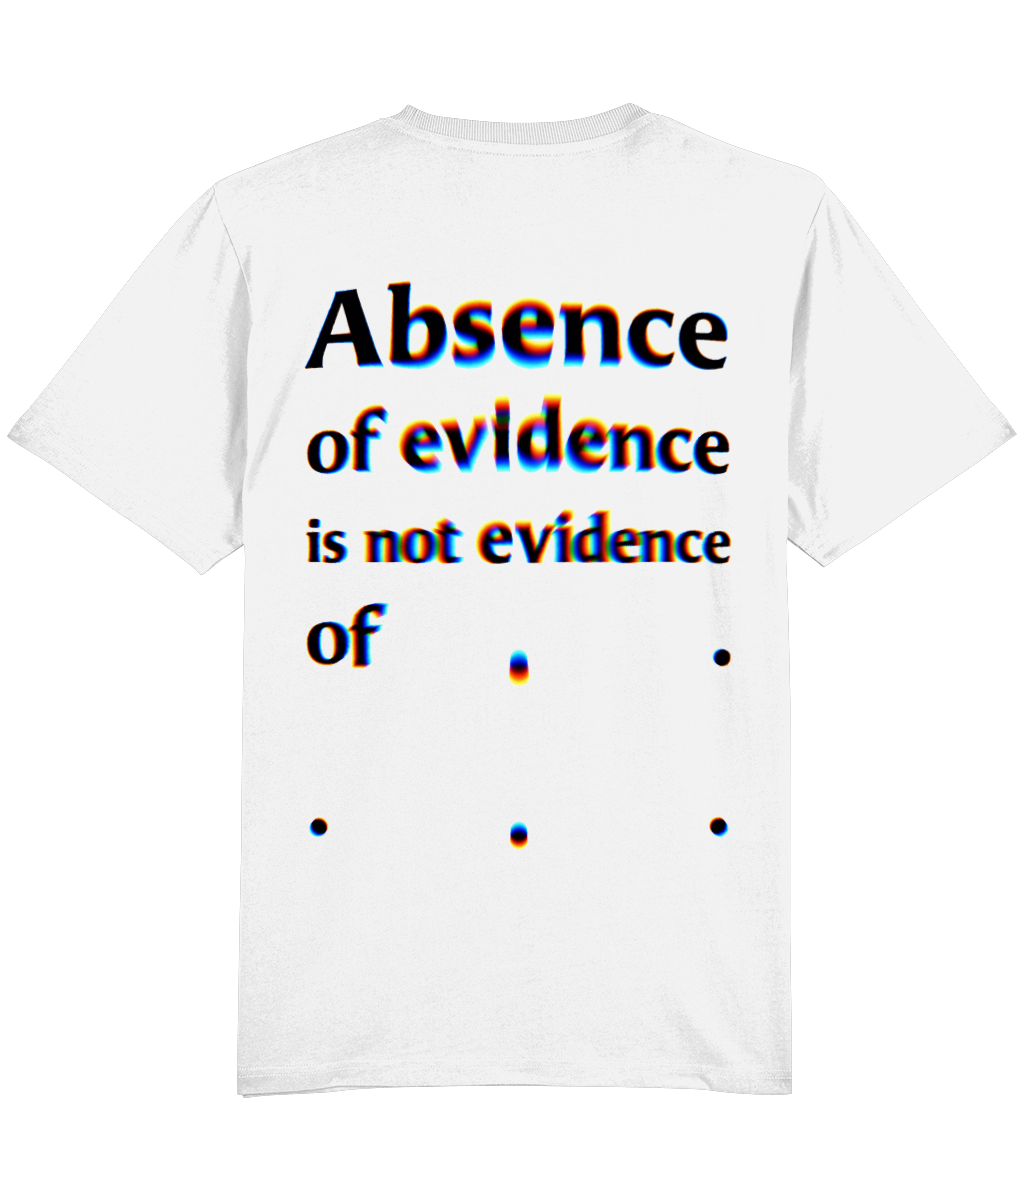 White T-Shirt with Absence of evidence is not evidence of . . . written on the back in large black text